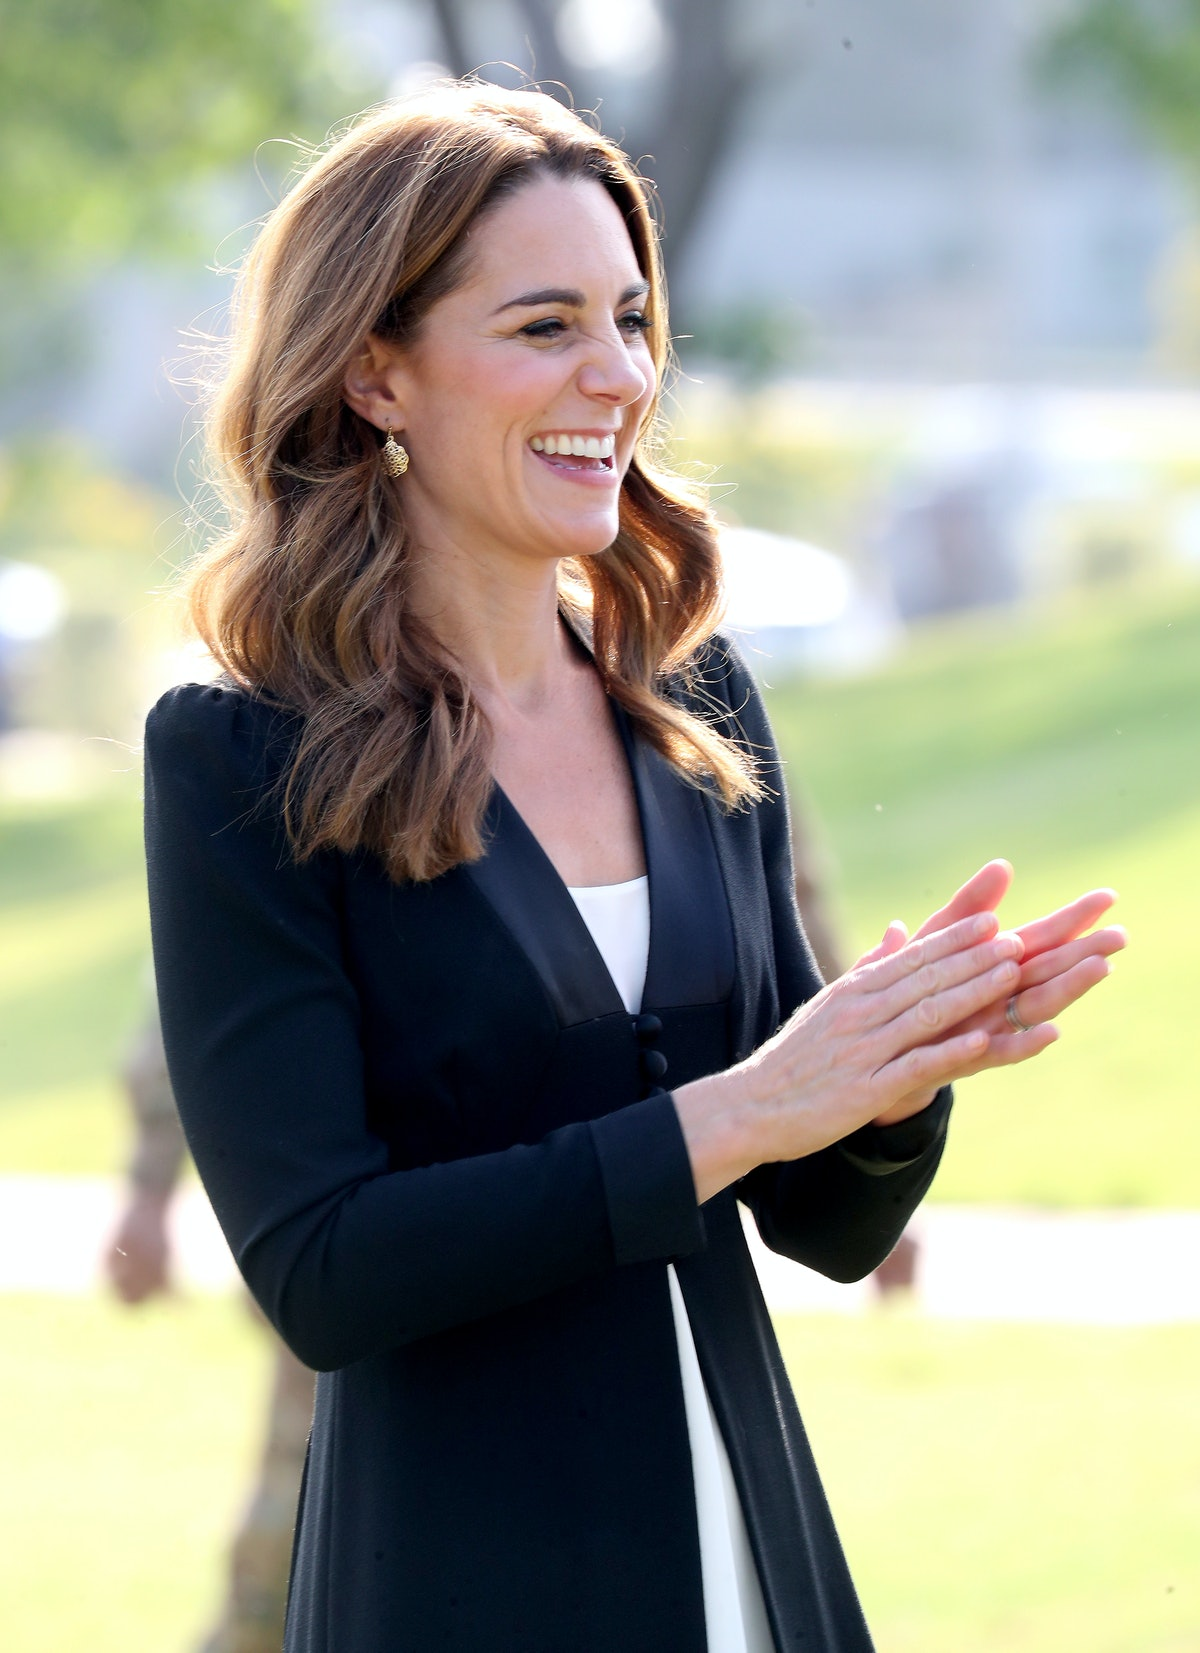 Fall 2019 hair colors inspired by Kate Middleton